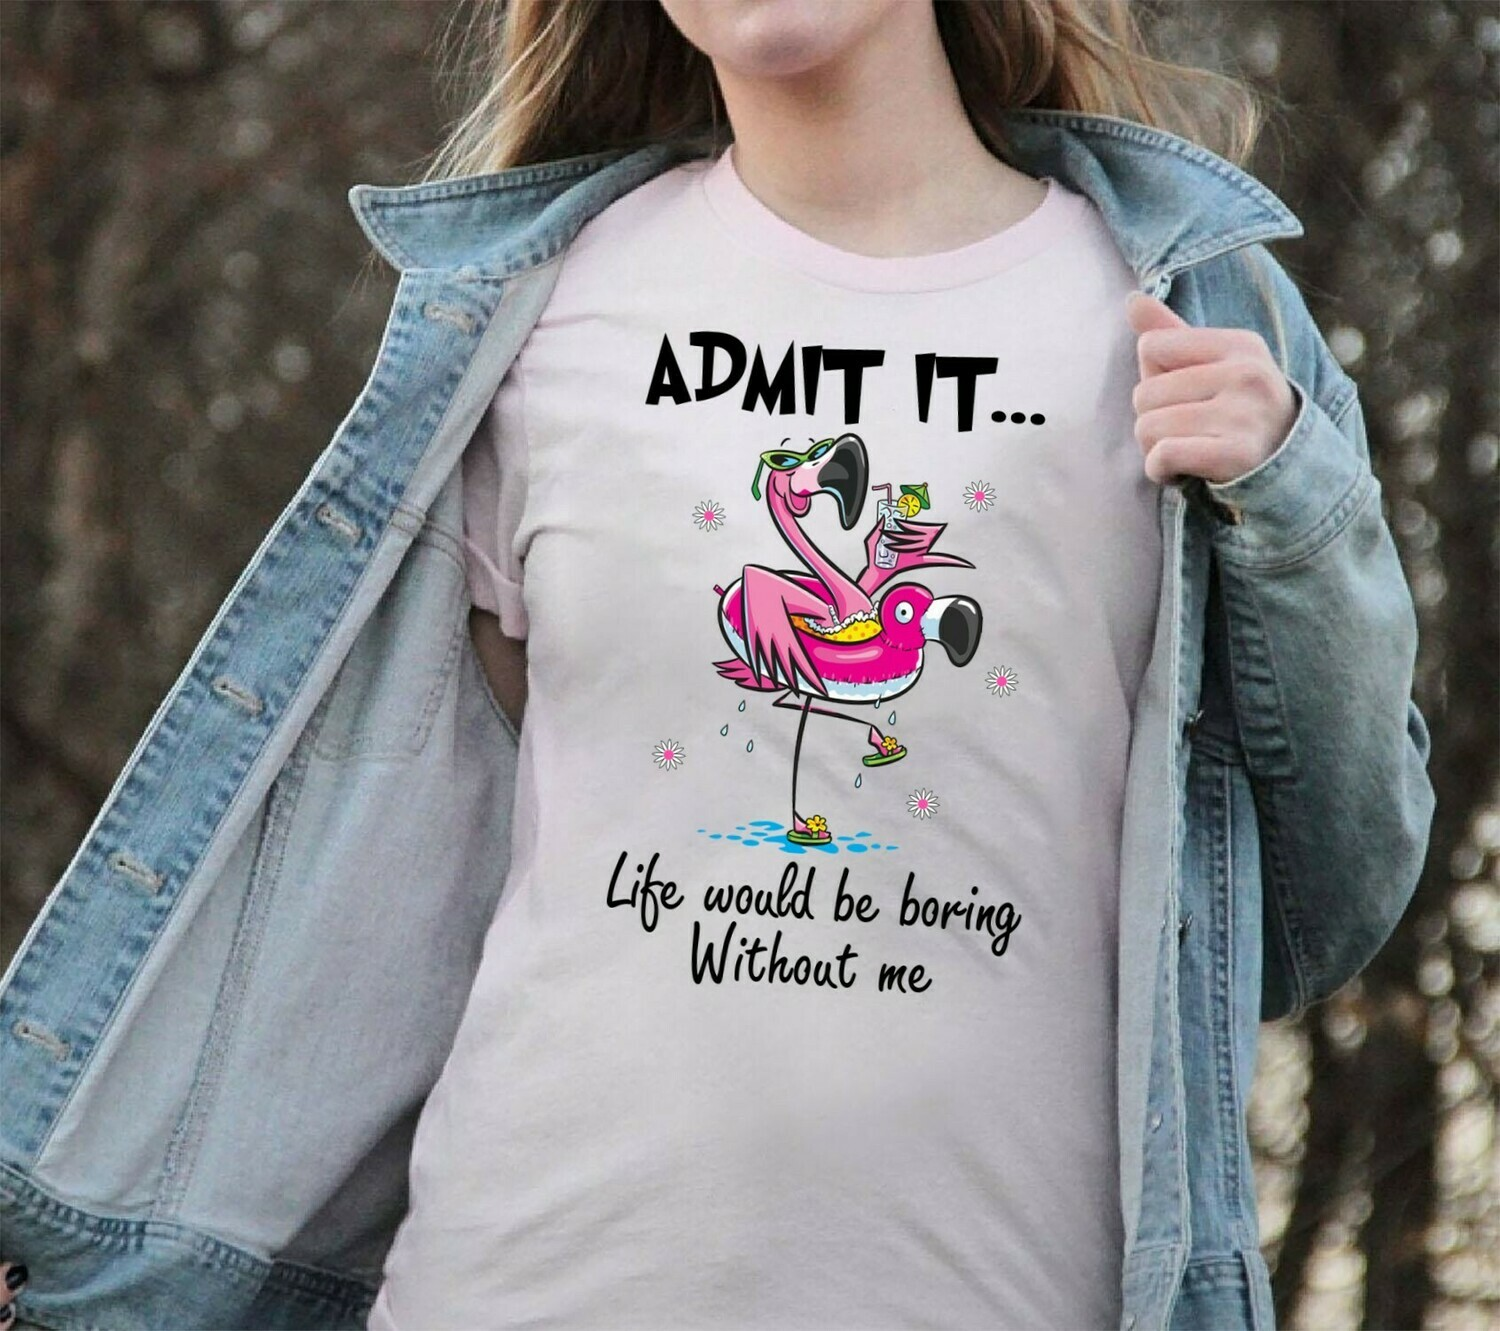 Admit It Life Would Be Boring Without Me - Cute Flamingo enthusiasts Gift Flamingo lovers, Funny Flamingo shirt for Best friends Team Group Long Sleeve Sweatshirt Hoodie Jolly Family Gifts